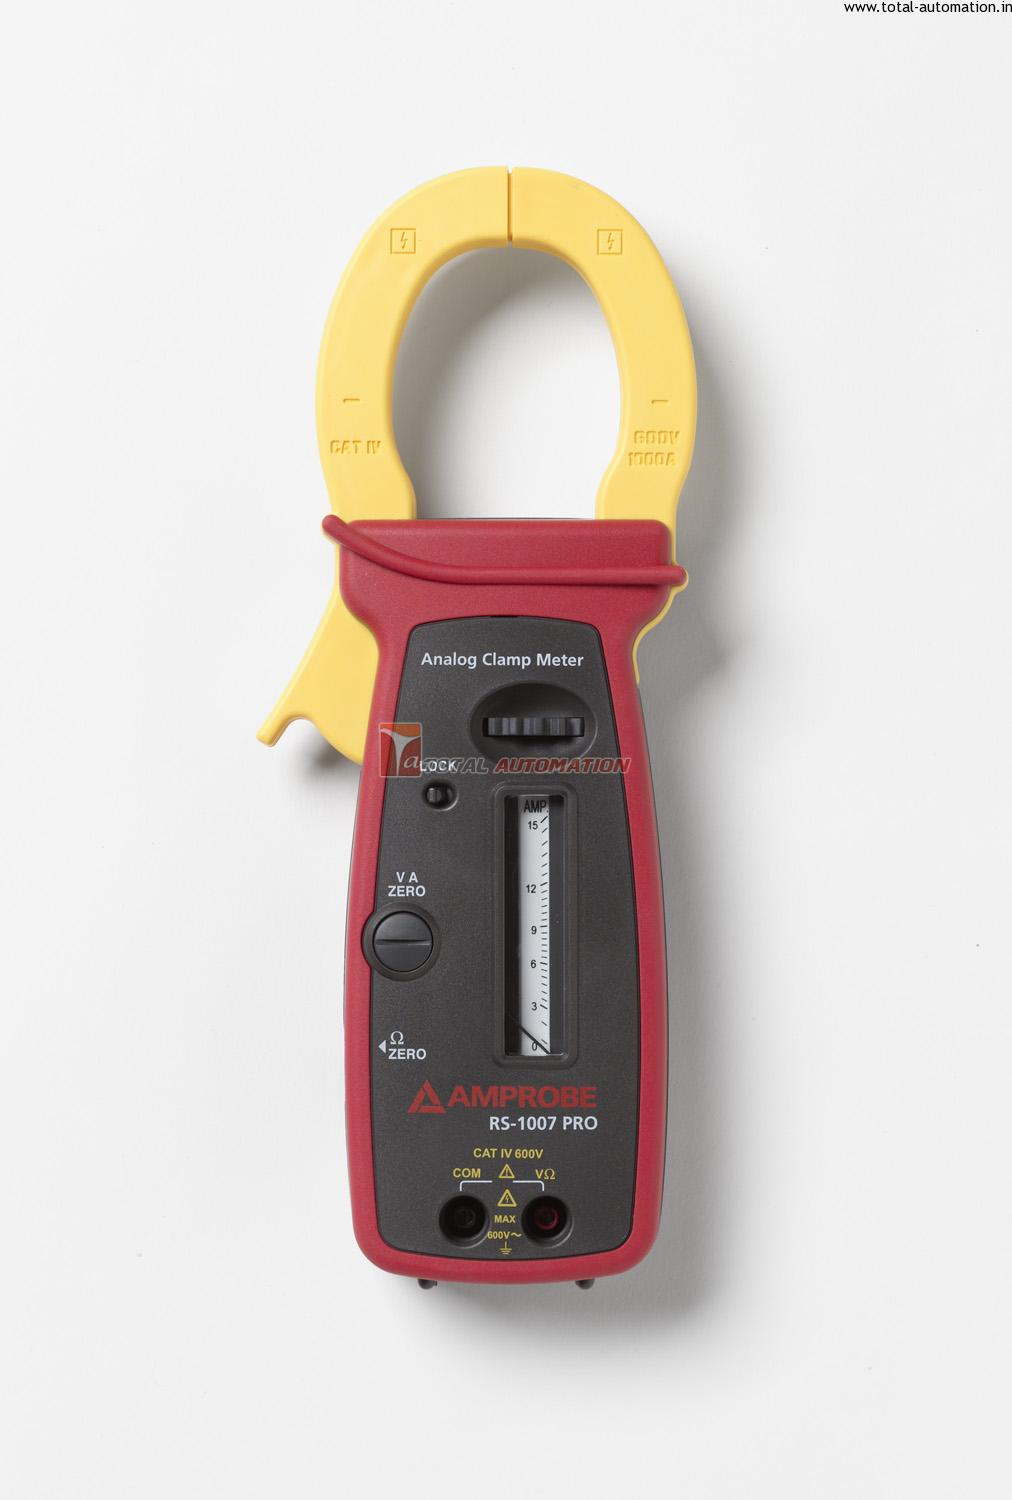 Analog Clamp Meter : Analog clamp meter rs amprobe